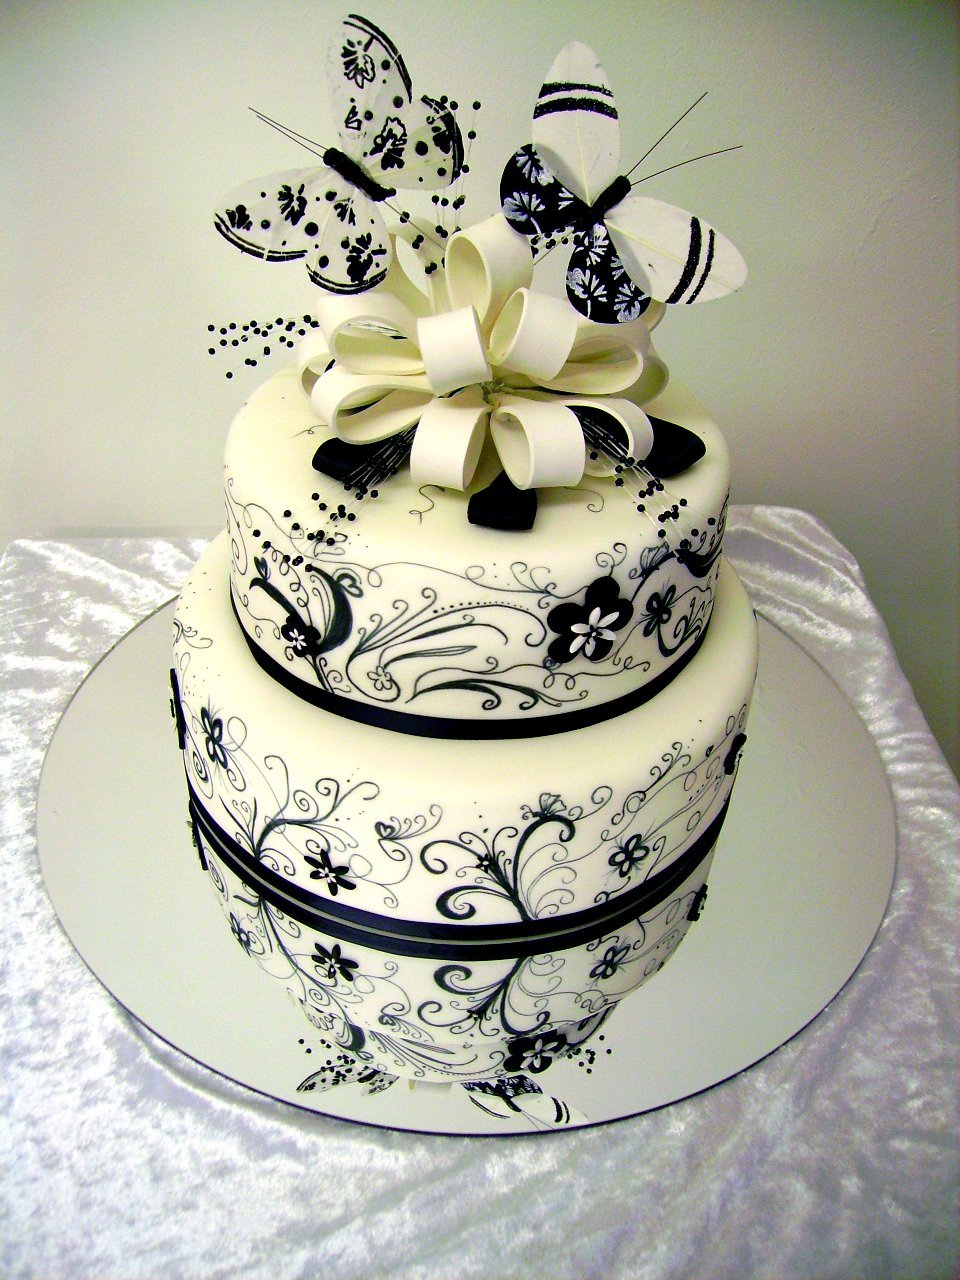 Cake Decorating Wedding Cakes : Wedding Cake Decor - Wedding and Bridal Inspiration